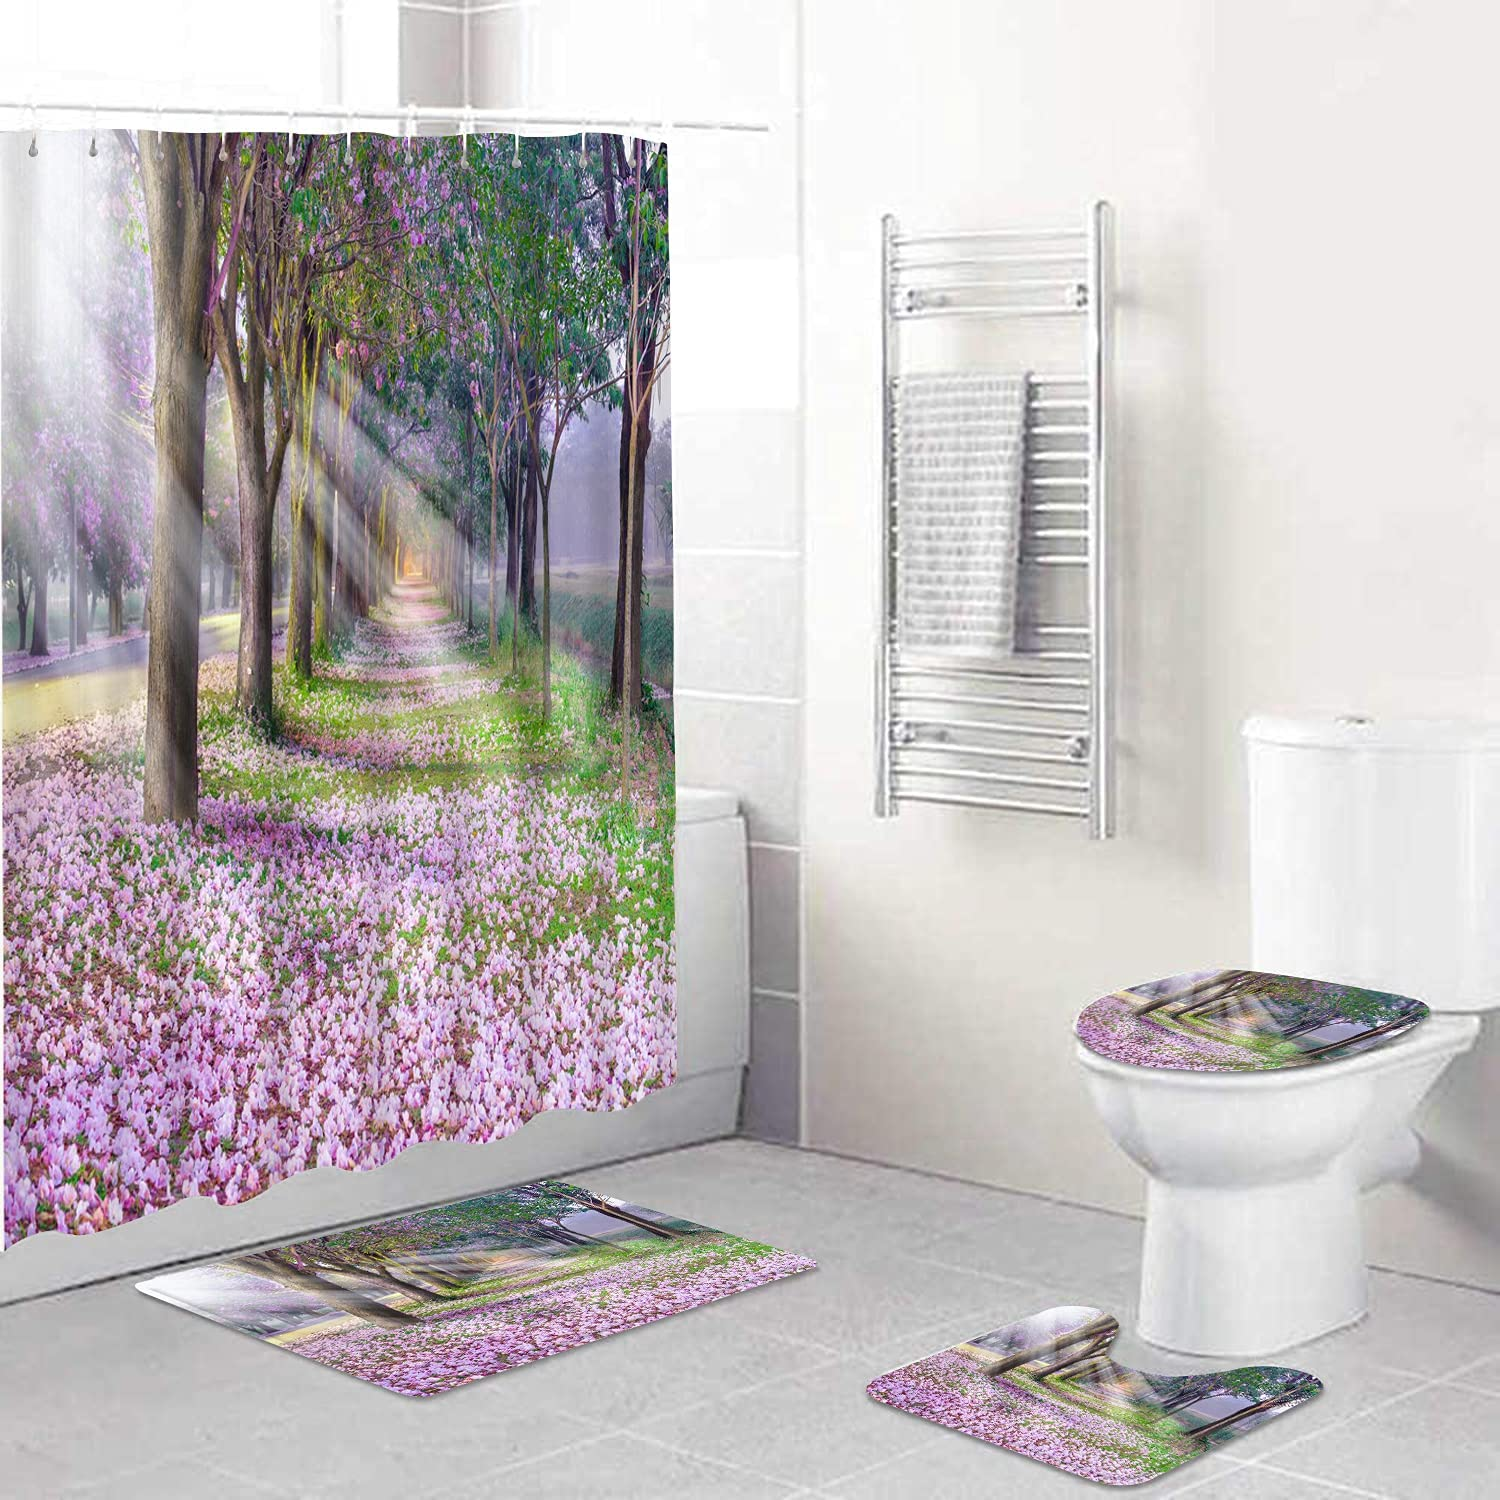 Spasm price AIRMARK Max 46% OFF 4 Pcs Shower Curtain Sets Non-Slip with Toilet Lid Rugs